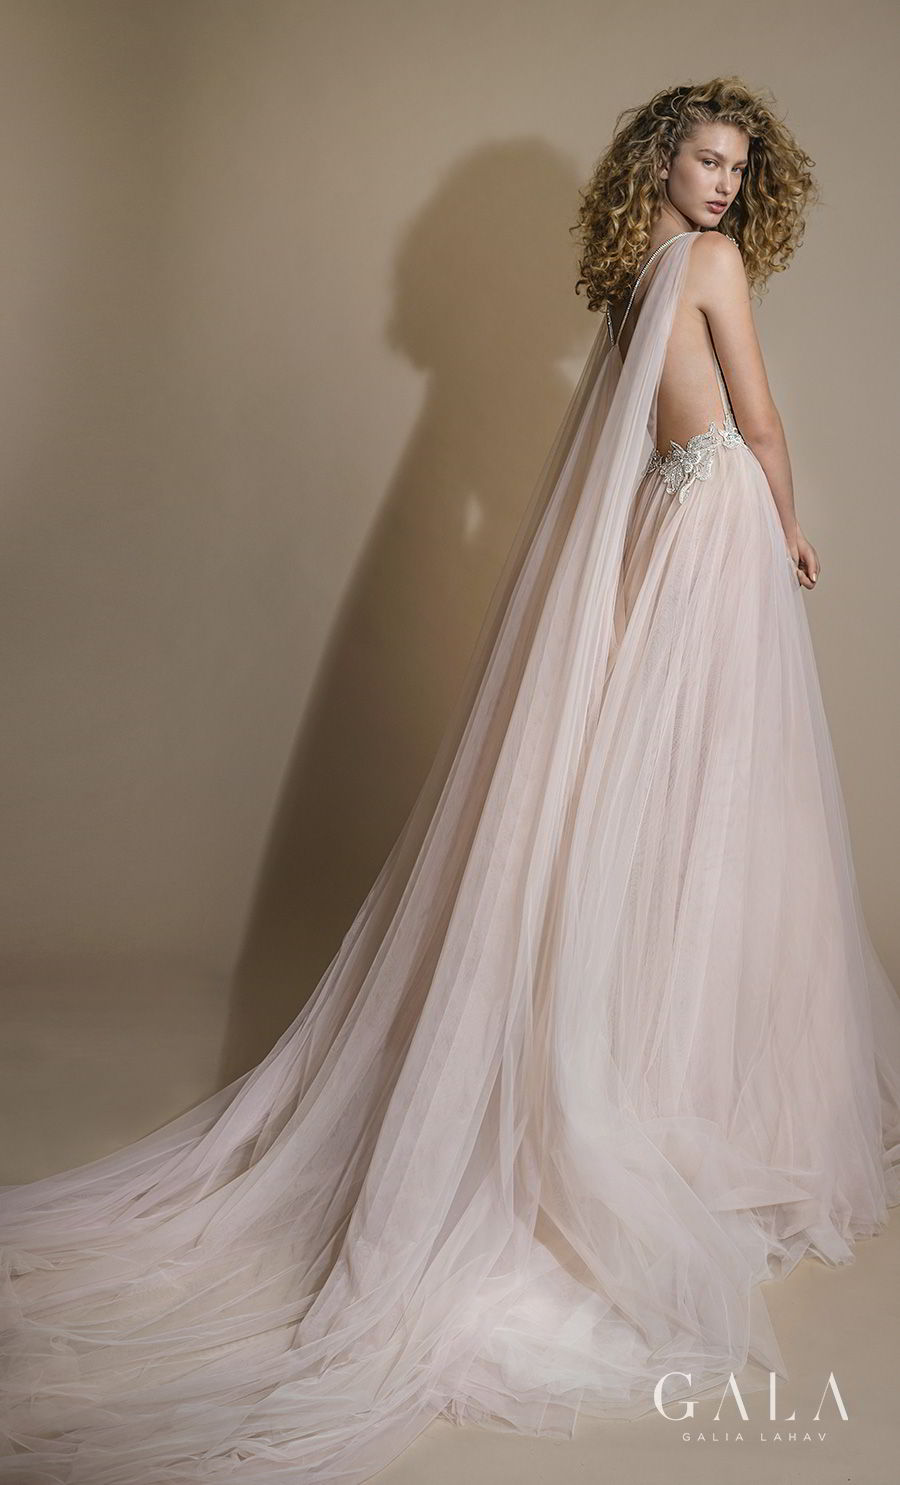 galia lahav gala 2019 bridal sleeveless with strap sweetheart neckline heavily embellished bodice bustier tulle skirt romantic blush a line wedding dress razor back chapel train (111) bv